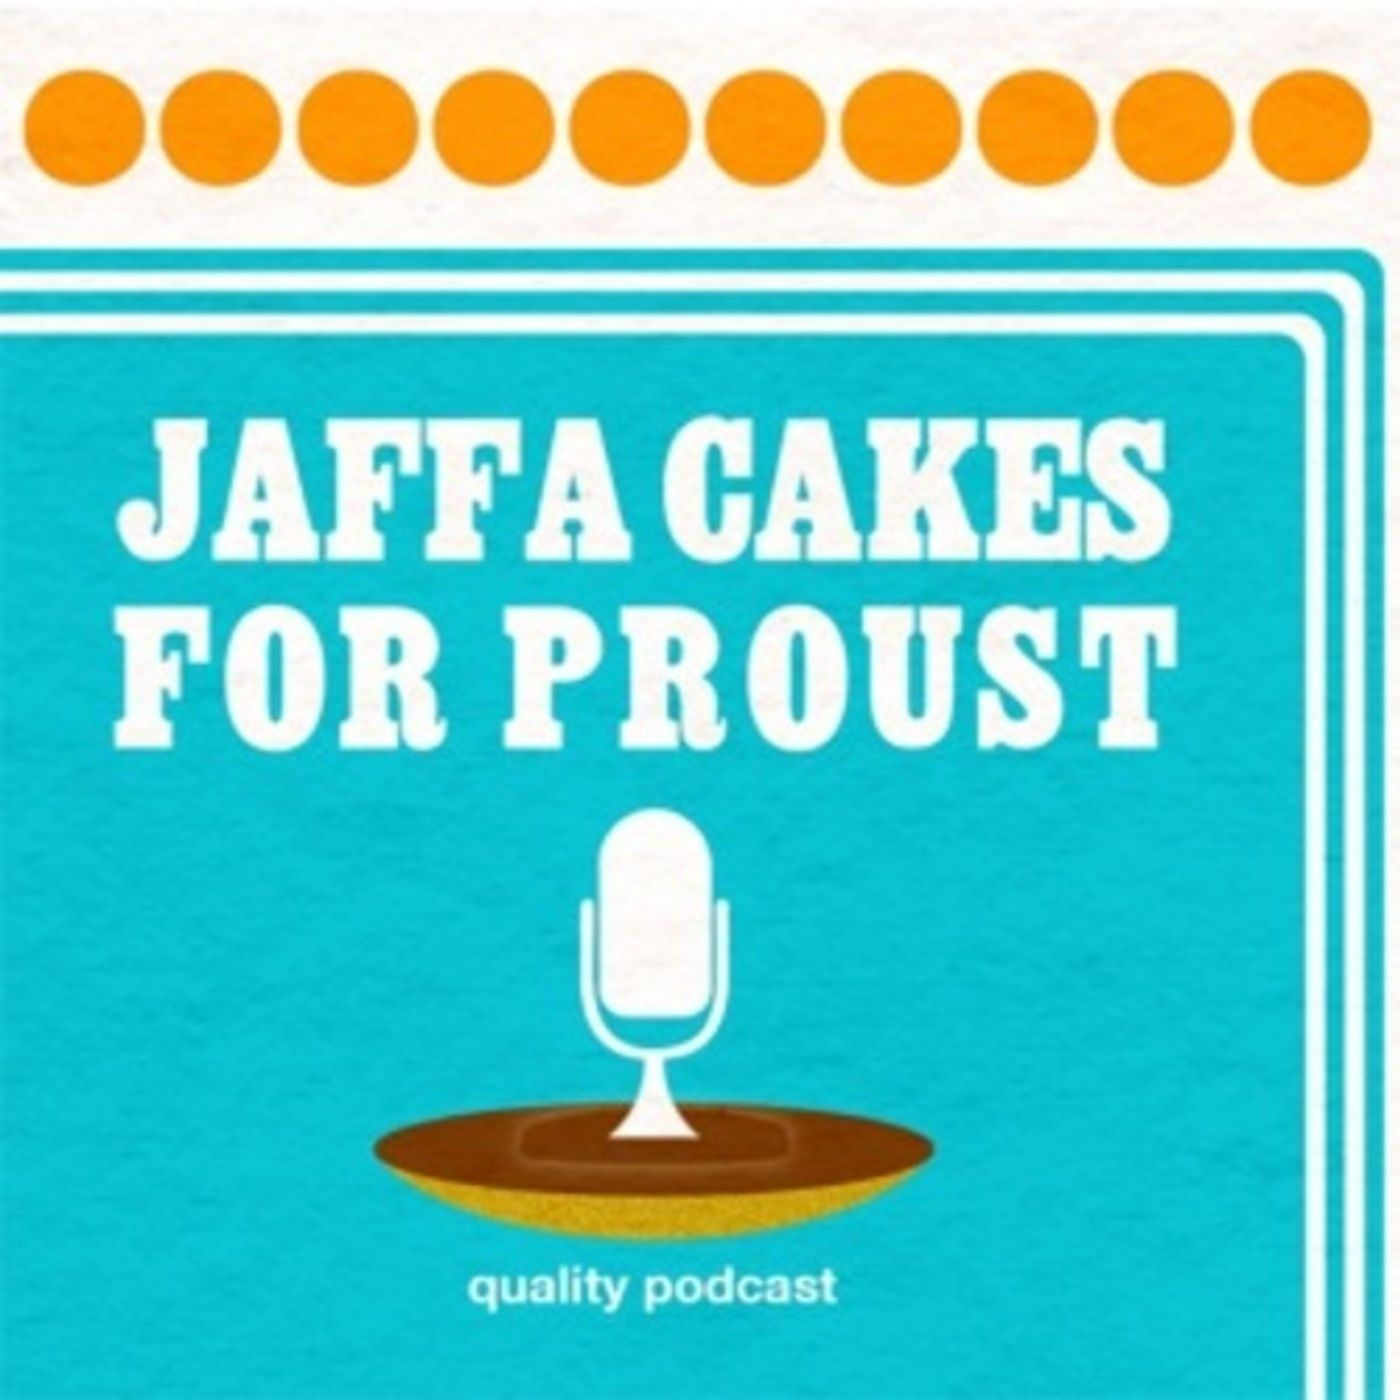 Jaffa Cakes For Proust